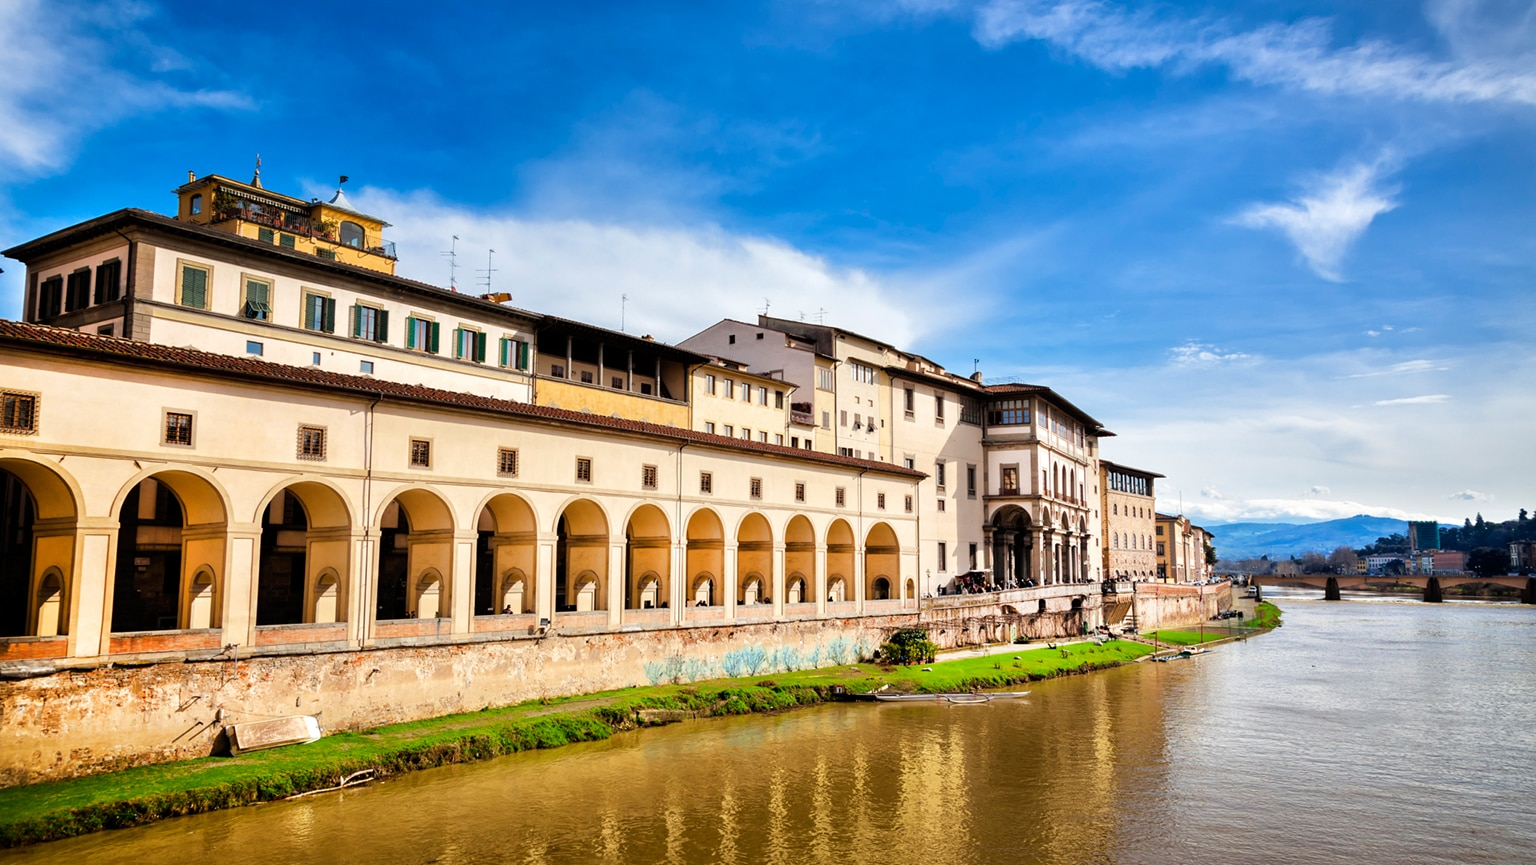 Florence: Politics in Art and Architecture